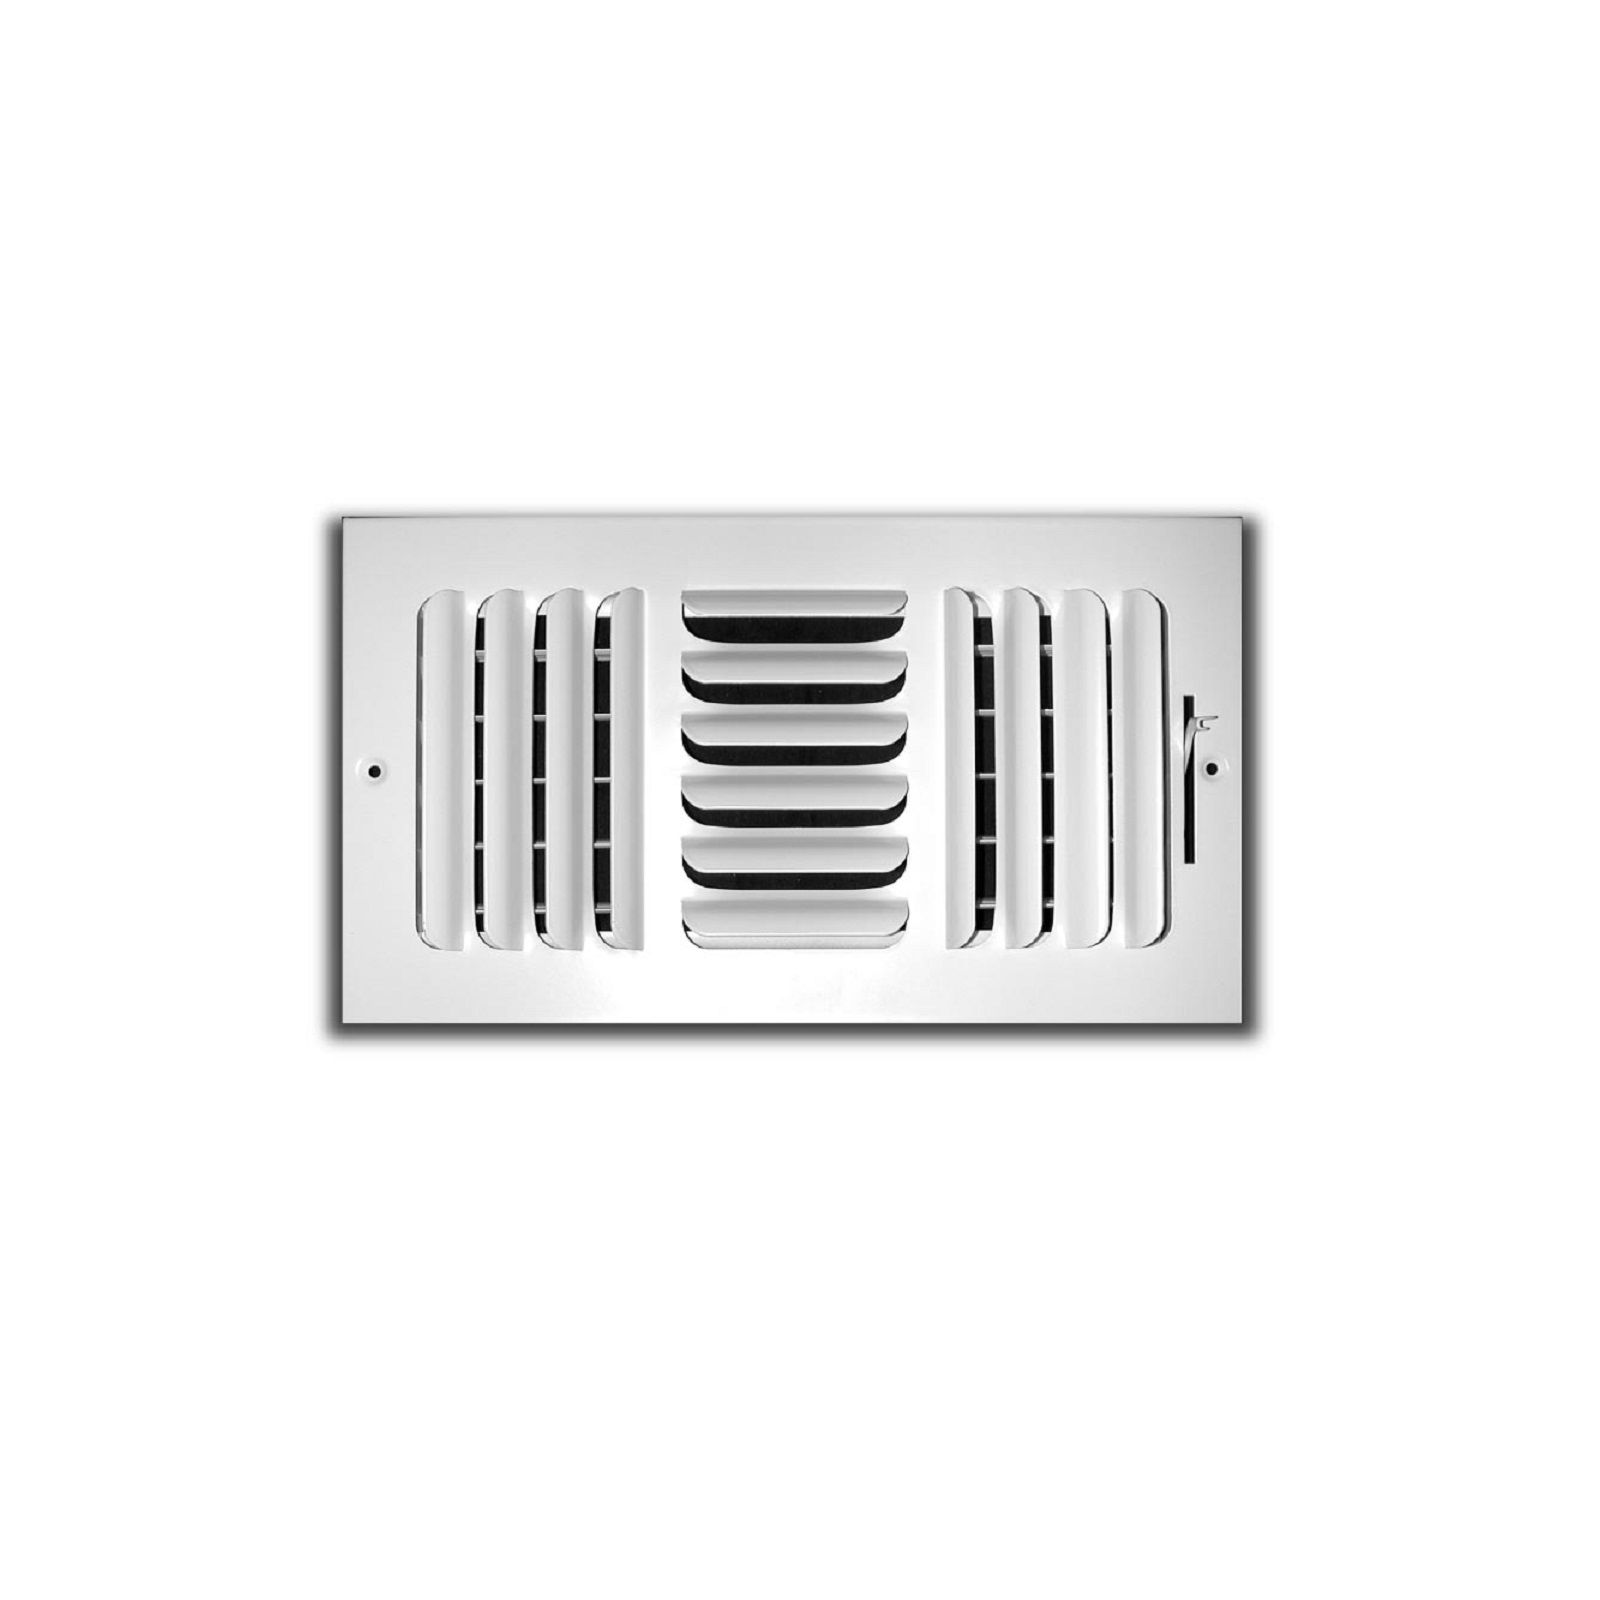 "TRUaire 403M 14X06 - Fixed Curved Blade Wall/Ceiling Register With Multi Shutter Damper, 3-Way, White, 14"" X 06"""